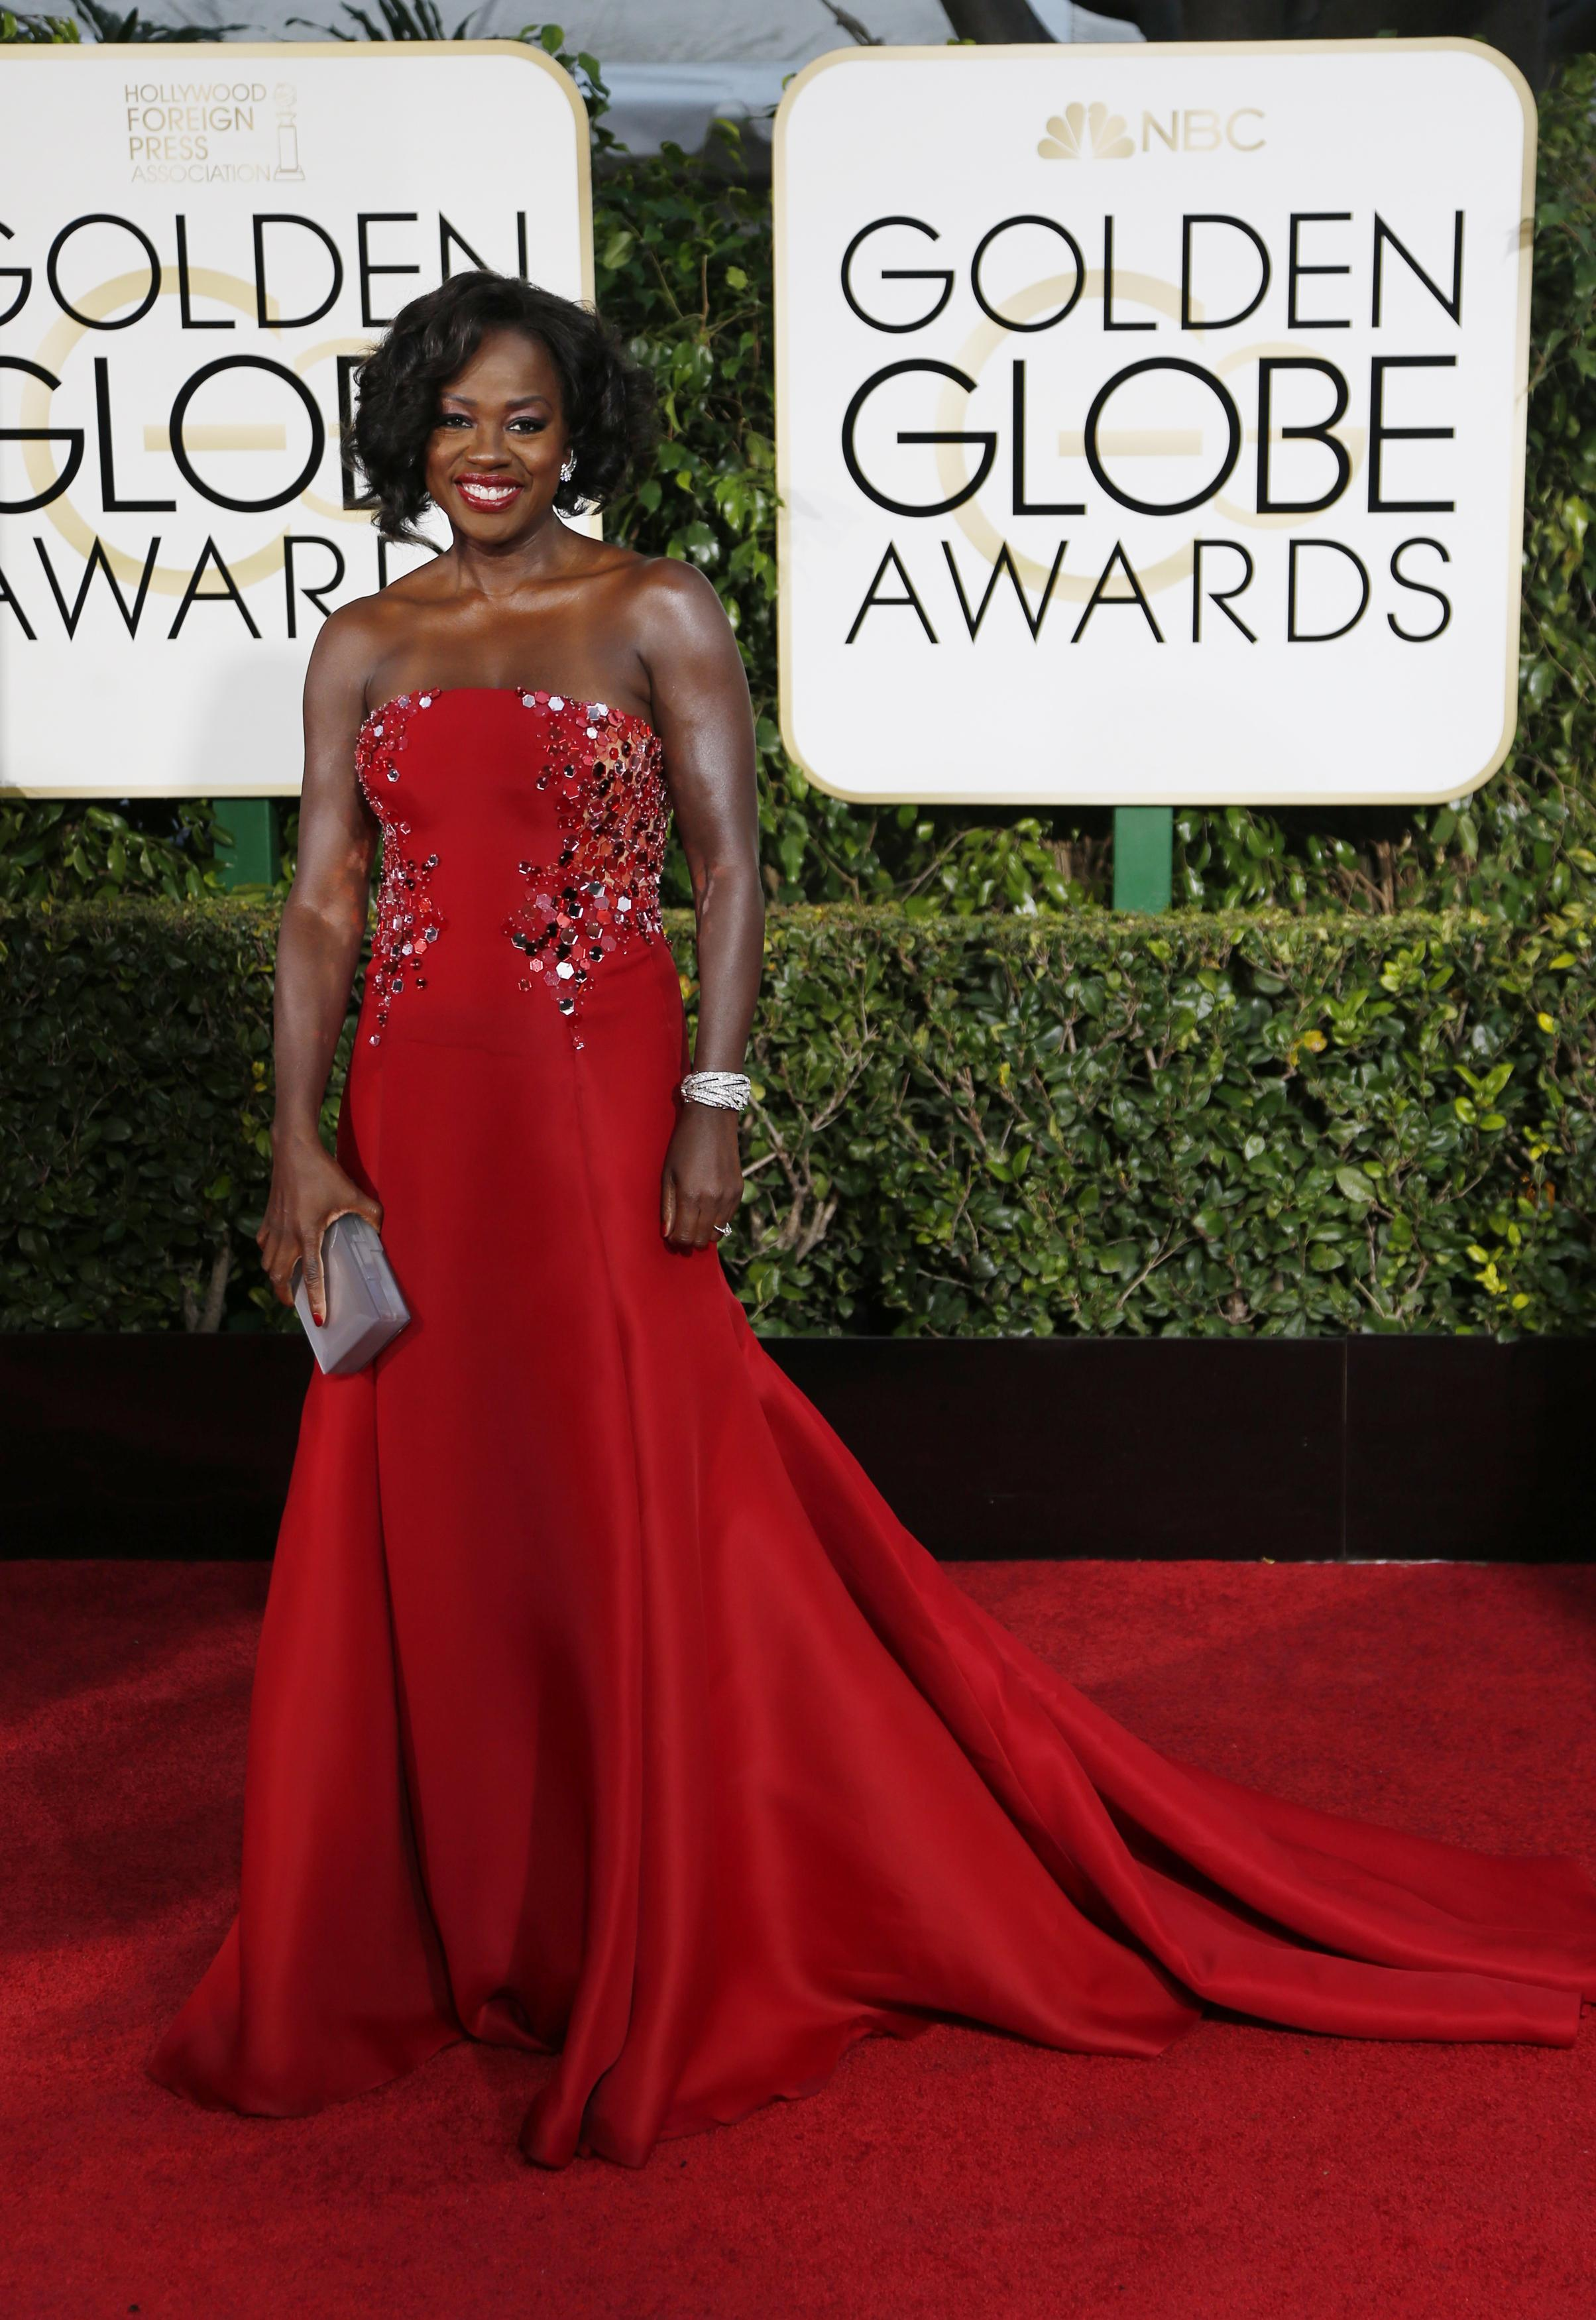 Golden Globes 2015 Red Carpet Trends: From Bold Red Looks ...